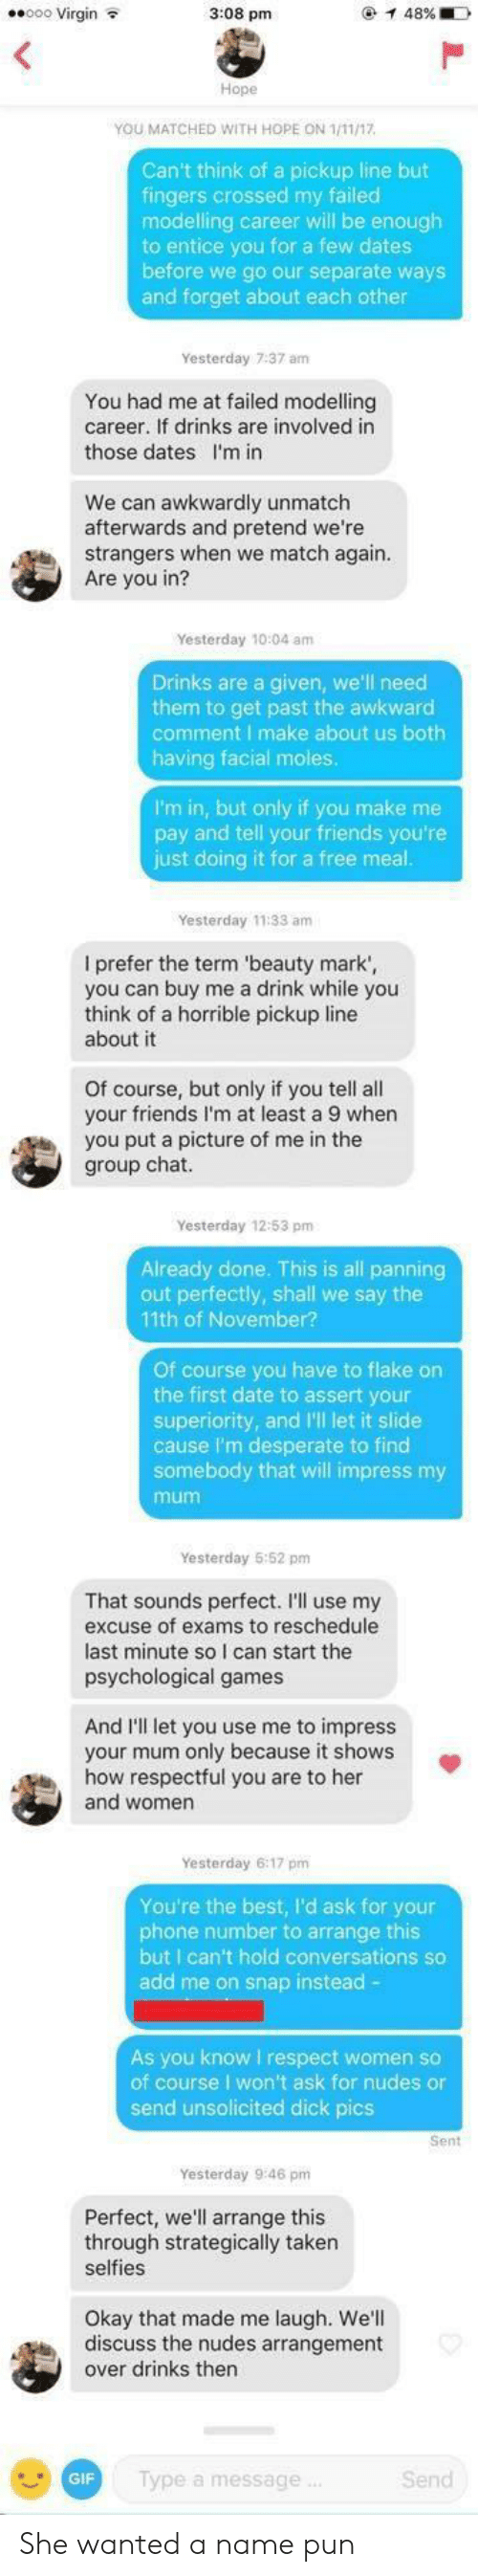 modelling: eo0 Virgin  3:08 pm  Hope  YOU MATCHED WITH HOPE ON 1/11/17  Can't think of a pickup line but  fingers crossed my failed  modelling career will be enough  to entice you for a few dates  before we go our separate ways  and forget about each other  Yesterday 7:37 am  You had me at failed modelling  career. If drinks are involved in  those dates I'm in  We can awkwardly unmatch  afterwards and pretend we're  strangers when we match again  Are you in?  Yesterday 10:04 amm  Drinks are a given, we'll need  them to get past the awkward  comment I make about us both  having facial moles  I'm in, but only if you make me  pay and tell your friends you're  just doing it for a free meal  Yesterday 11:33 am  I prefer the term 'beauty mark',  you can buy me a drink while you  think of a horrible pickup line  about it  Of course, but only if you tell all  your friends I'm at least a 9 when  you put a picture of me in the  group chat  Yesterday 12:53 pm  Already done. This is all panning  out perfectly, shall we say the  11th of November?  Of course you have to flake on  the first date to assert your  superiority, and I'll let it slide  cause I'm desperate to find  somebody that will impress my  mum  Yesterday 5:52 pm  That sounds perfect. I'll use my  excuse of exams to reschedule  last minute so I can start the  psychological games  And I'll let you use me to impress  your mum only because it shows  how respectful you are to her  and women  Yesterday 6:17 pm  You're the best, I'd ask for your  phone number to arrange this  but I can't hold conversations so  add me on snap instead -  As you know I respect women so  of course I won't ask for nudes or  send unsolicited dick pics  Sent  Yesterday 9:46 pm  Perfect, we'll arrange this  through strategically taken  selfies  Okay that made me laugh. We'll  discuss the nudes arrangement  over drinks thern  GIF  lype a message  Send She wanted a name pun